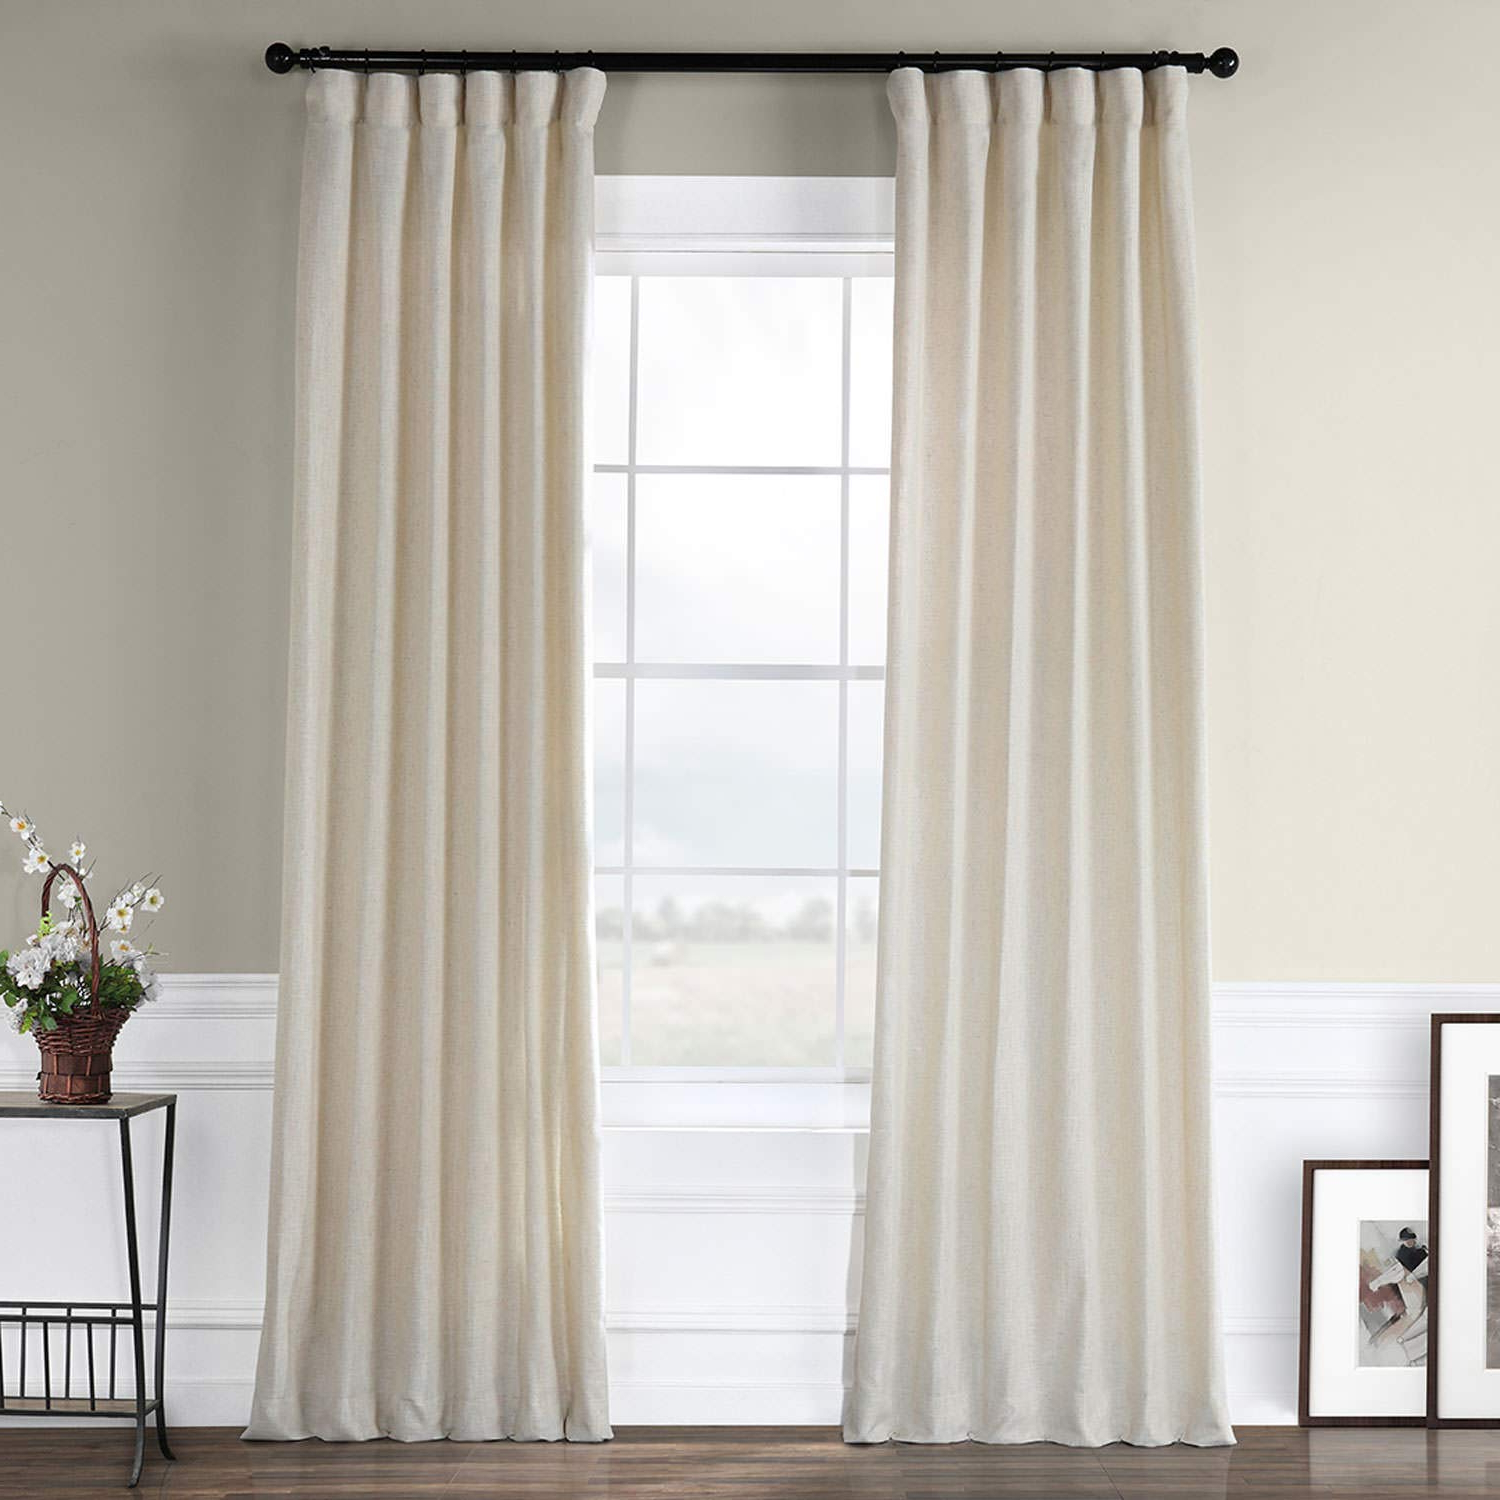 Best And Newest Heavy Faux Linen Single Curtain Panels With Half Price Drapes Fhlch Vet13192 108 Barley Heavy Faux Linen Curtain, 50 X 108, Brown (View 4 of 20)